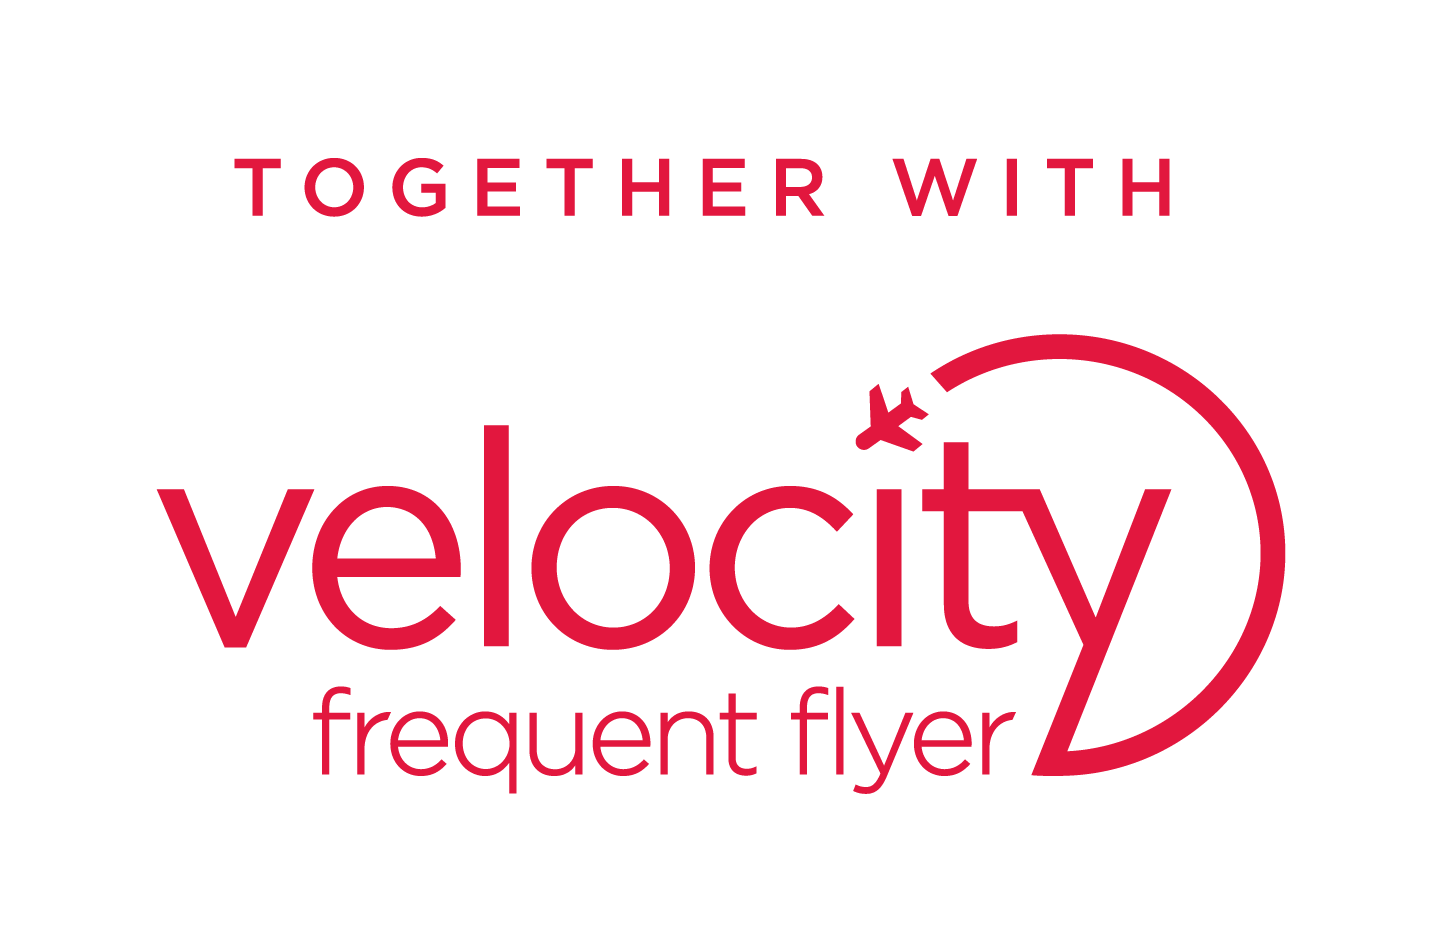 Together with Velocity [velocity logo]